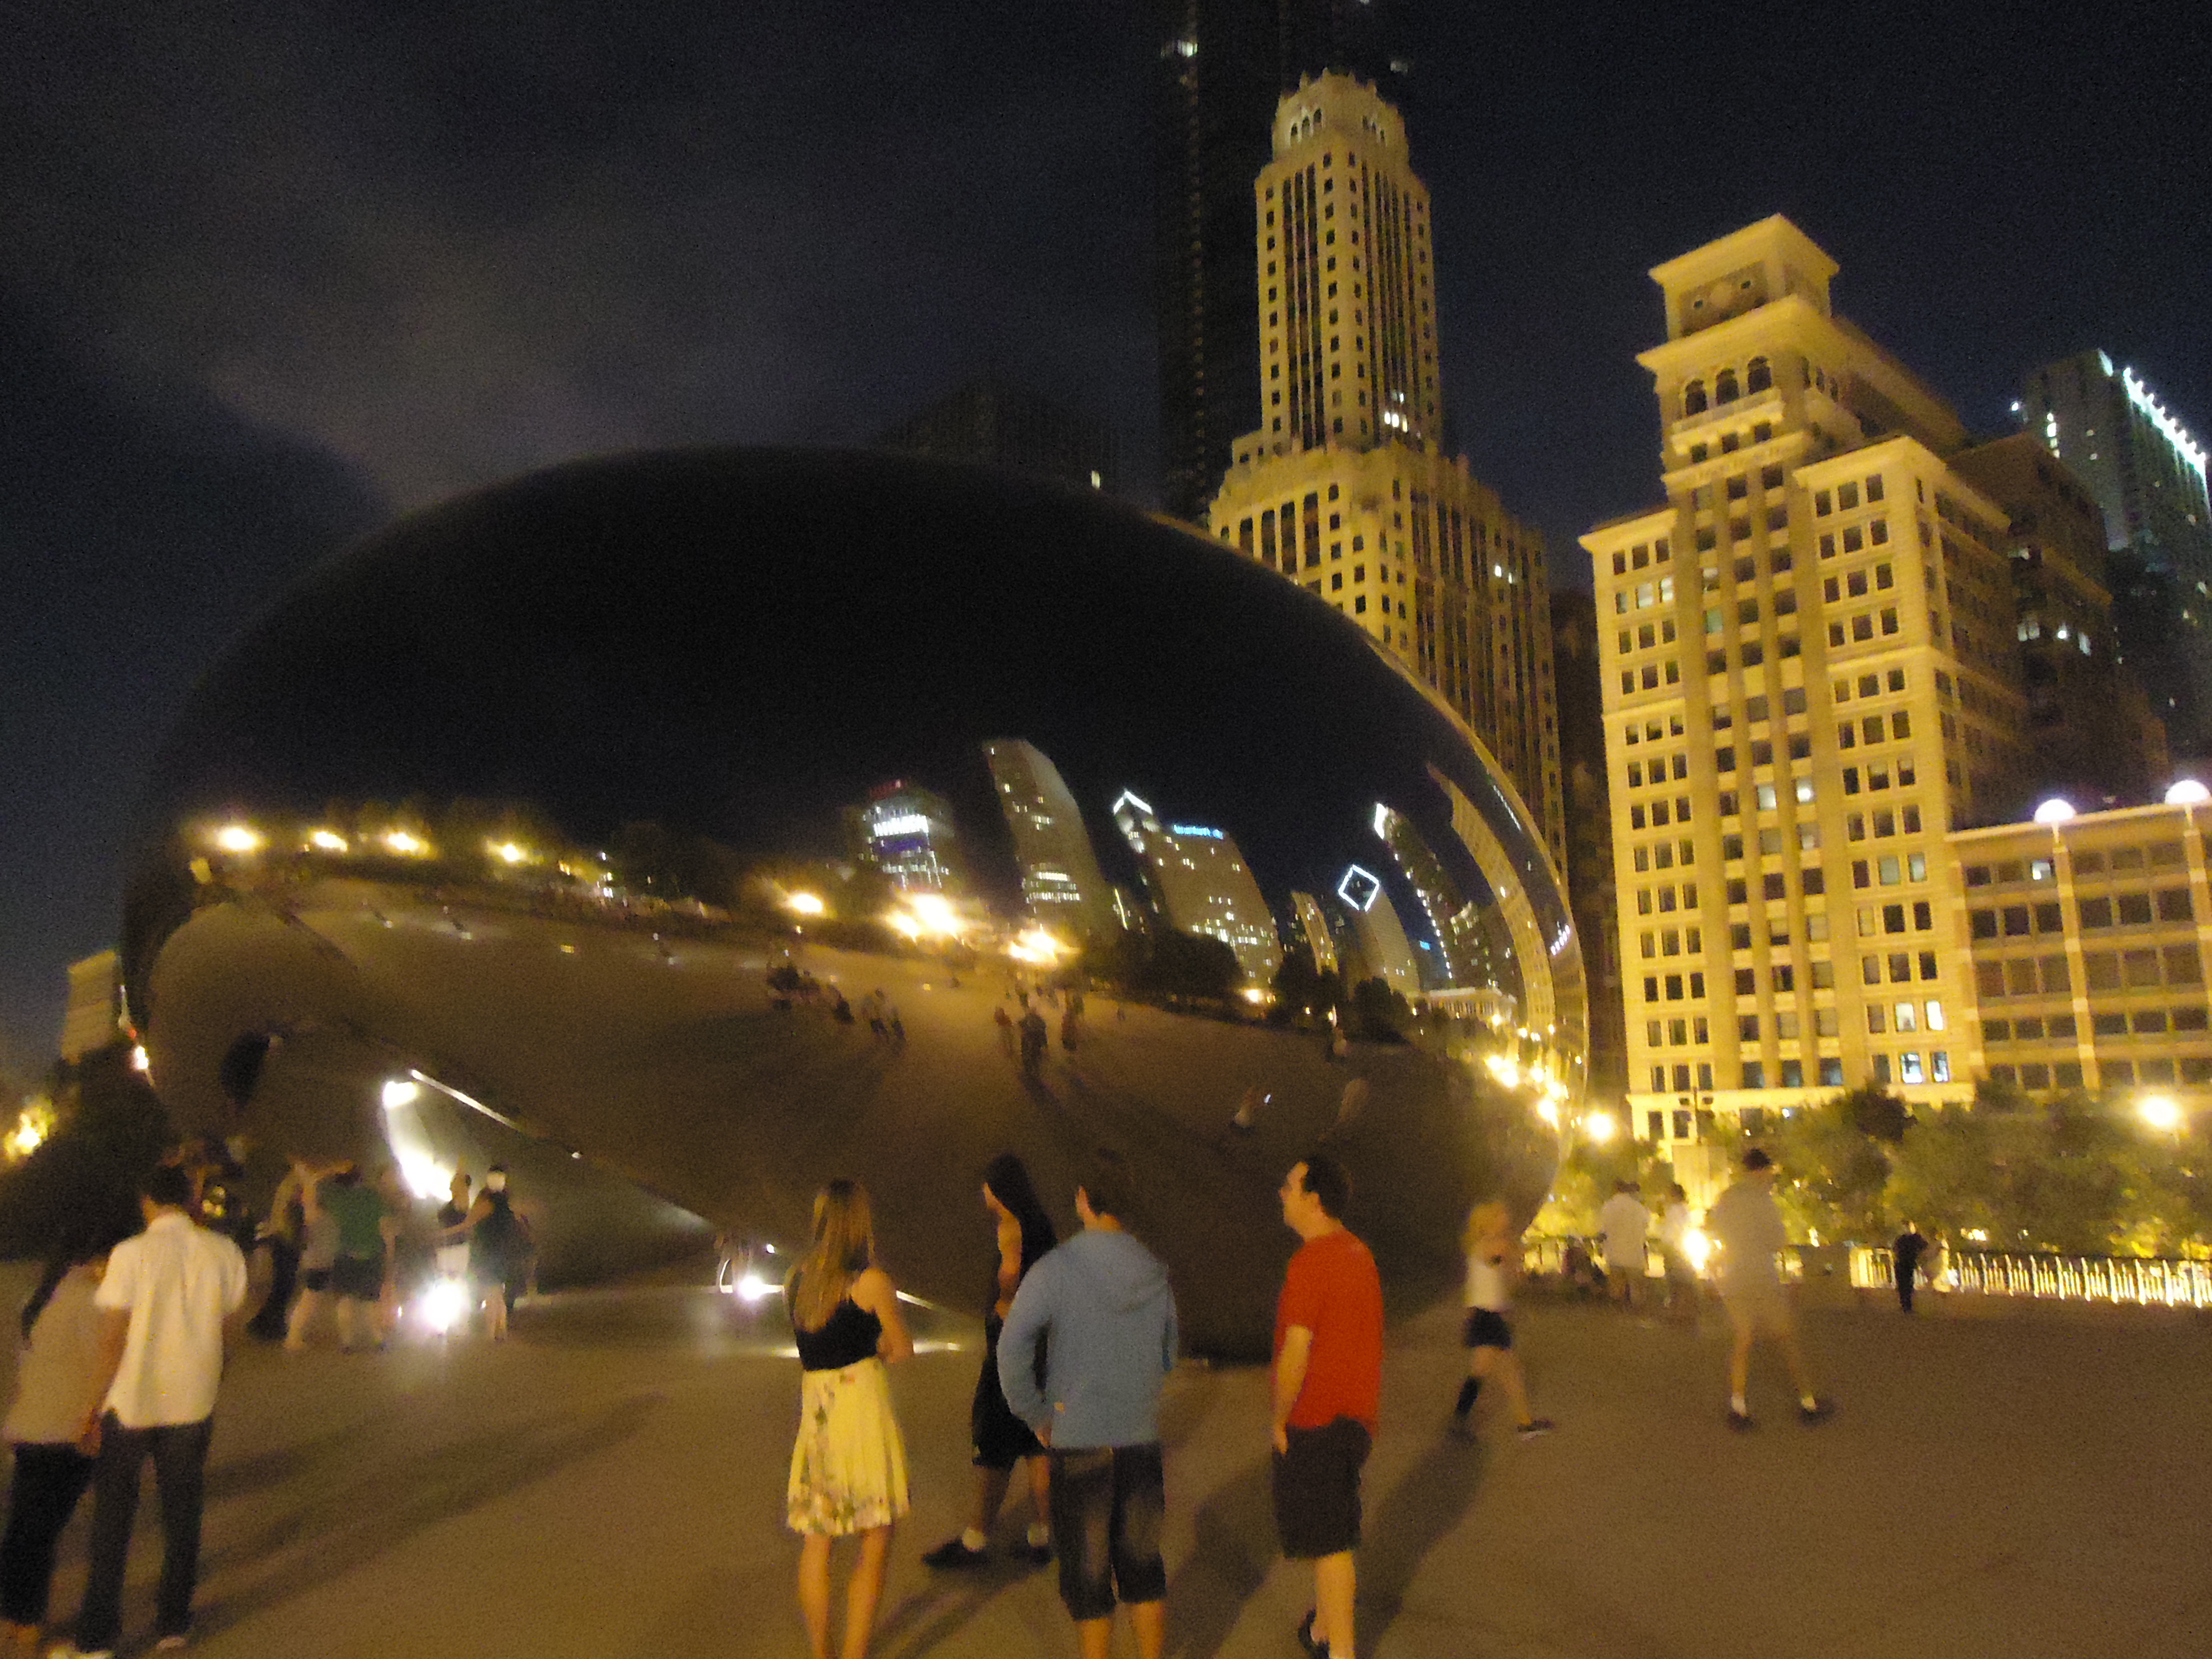 A Cruising Couple, The Bean